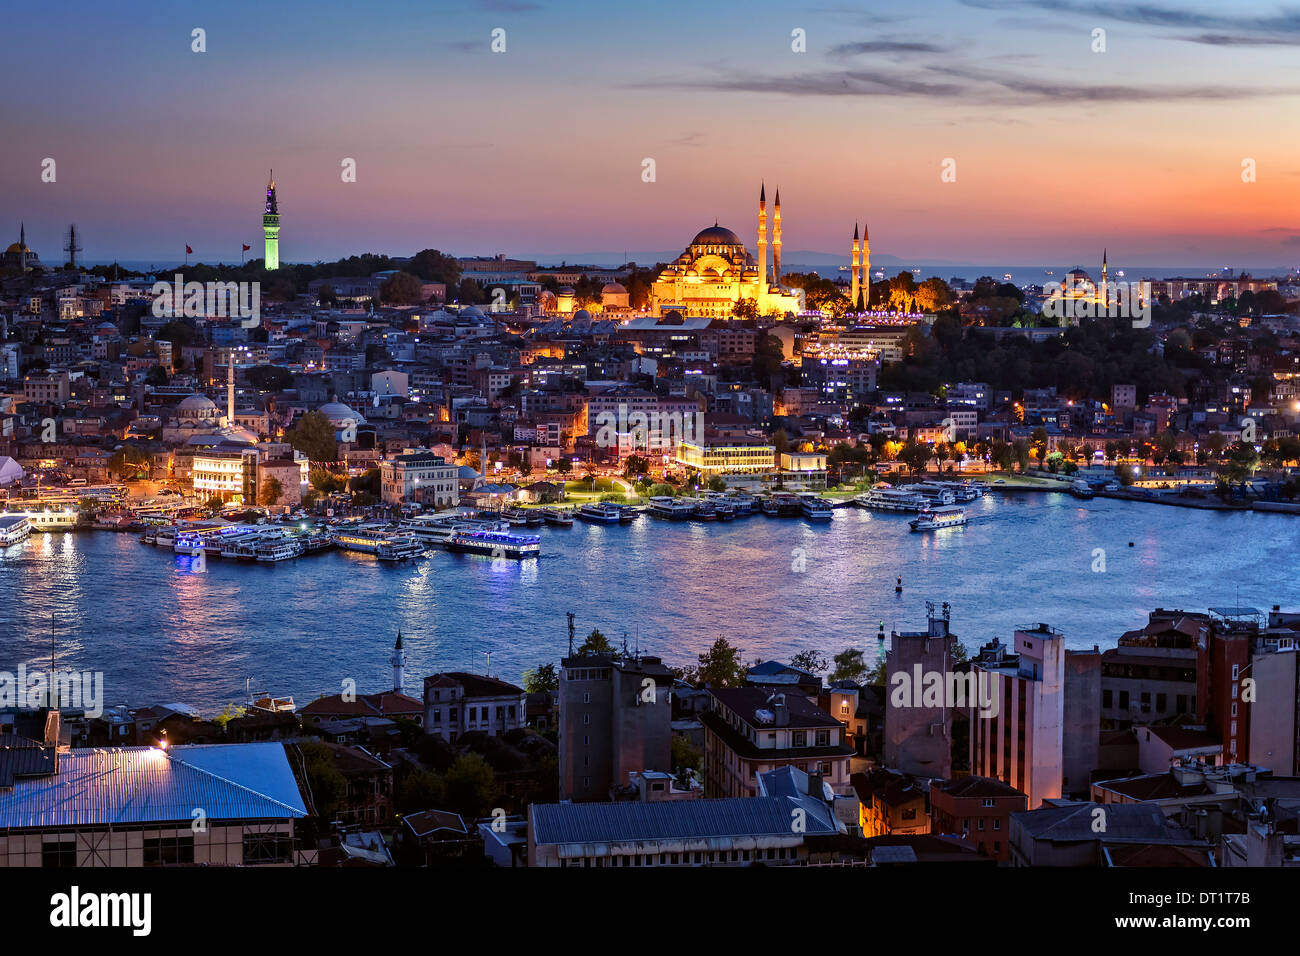 View over the Golden Horn towards the Suleymaniye Cami. - Stock Image